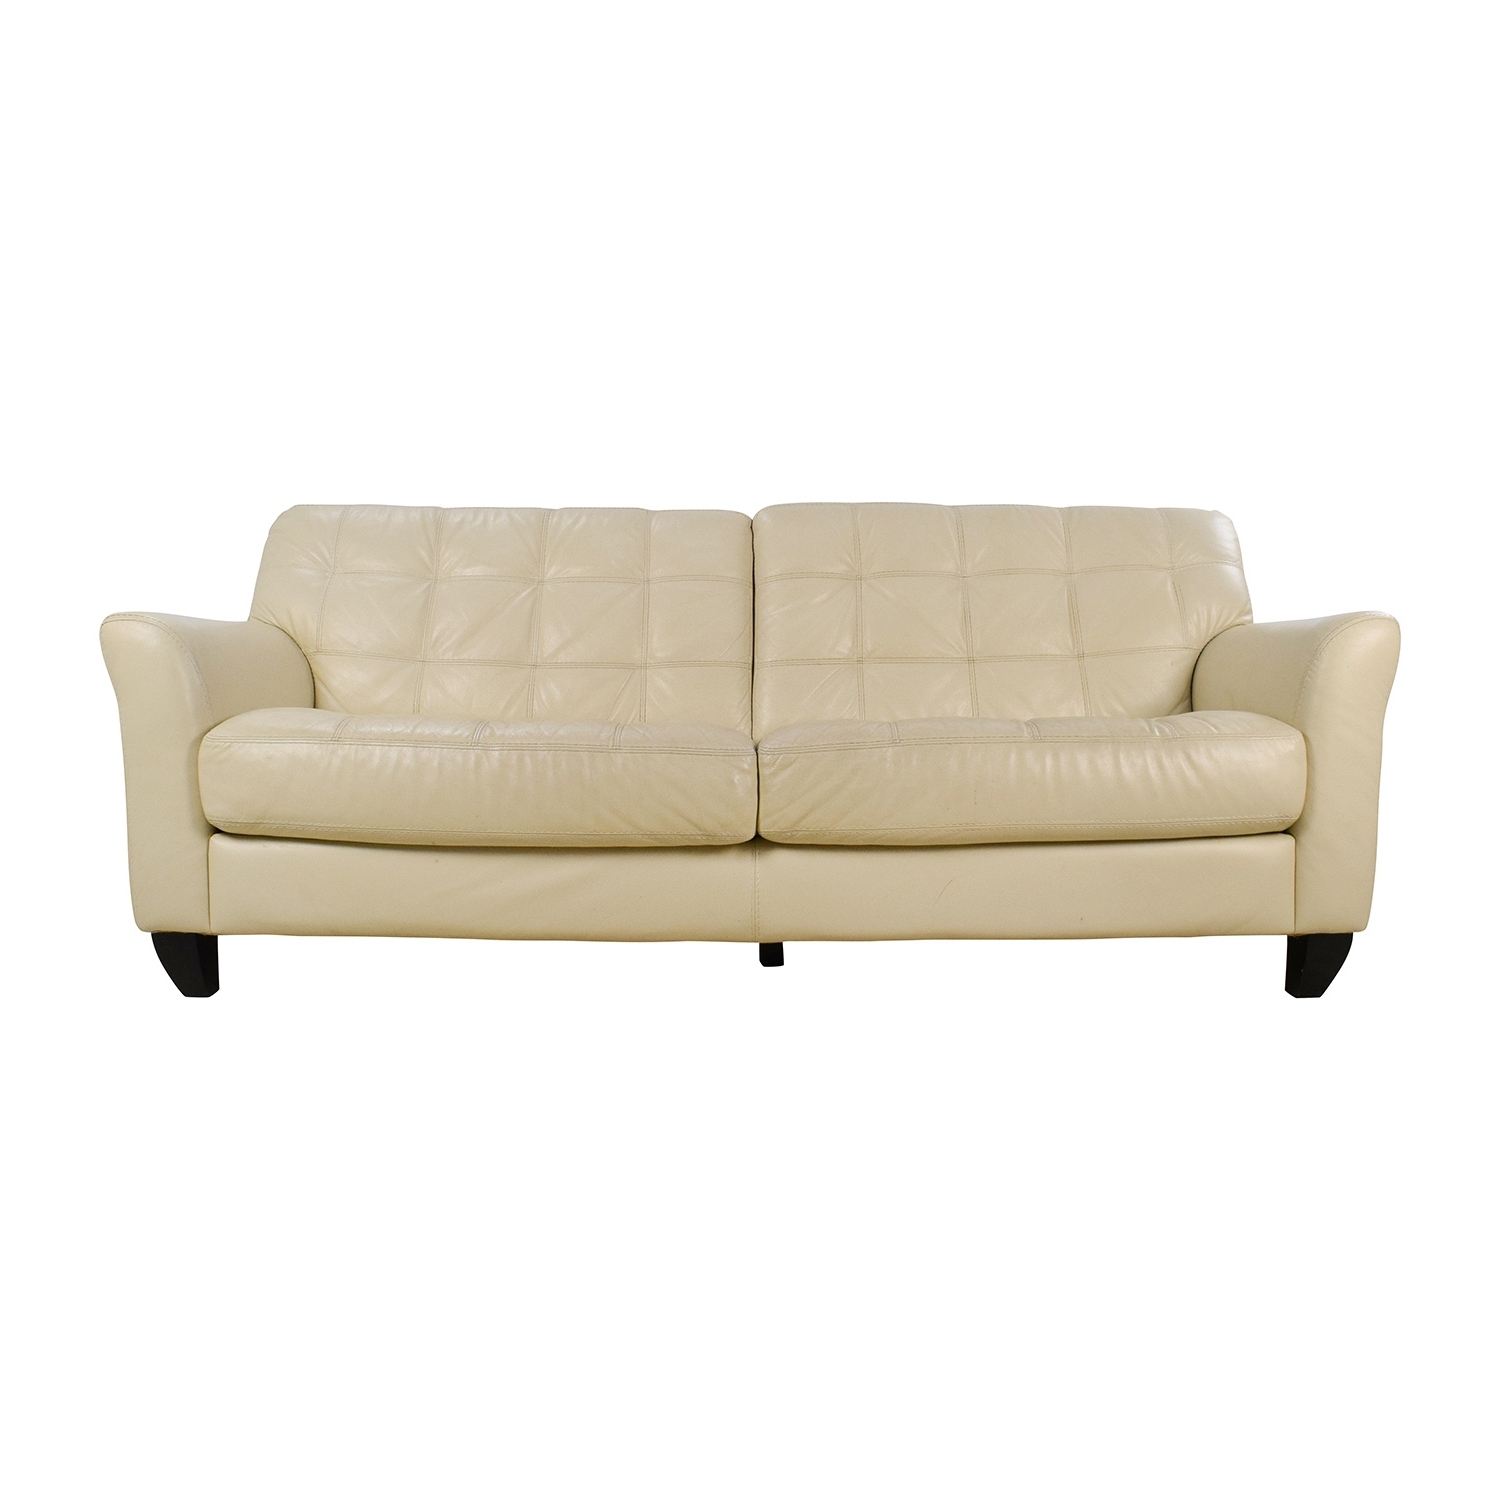 [%68% Off – Macy's Macy's Milan White Leather Couch / Sofas With Well Known Off White Leather Sofas|Off White Leather Sofas Pertaining To Most Current 68% Off – Macy's Macy's Milan White Leather Couch / Sofas|Most Current Off White Leather Sofas In 68% Off – Macy's Macy's Milan White Leather Couch / Sofas|Well Liked 68% Off – Macy's Macy's Milan White Leather Couch / Sofas Throughout Off White Leather Sofas%] (View 1 of 15)